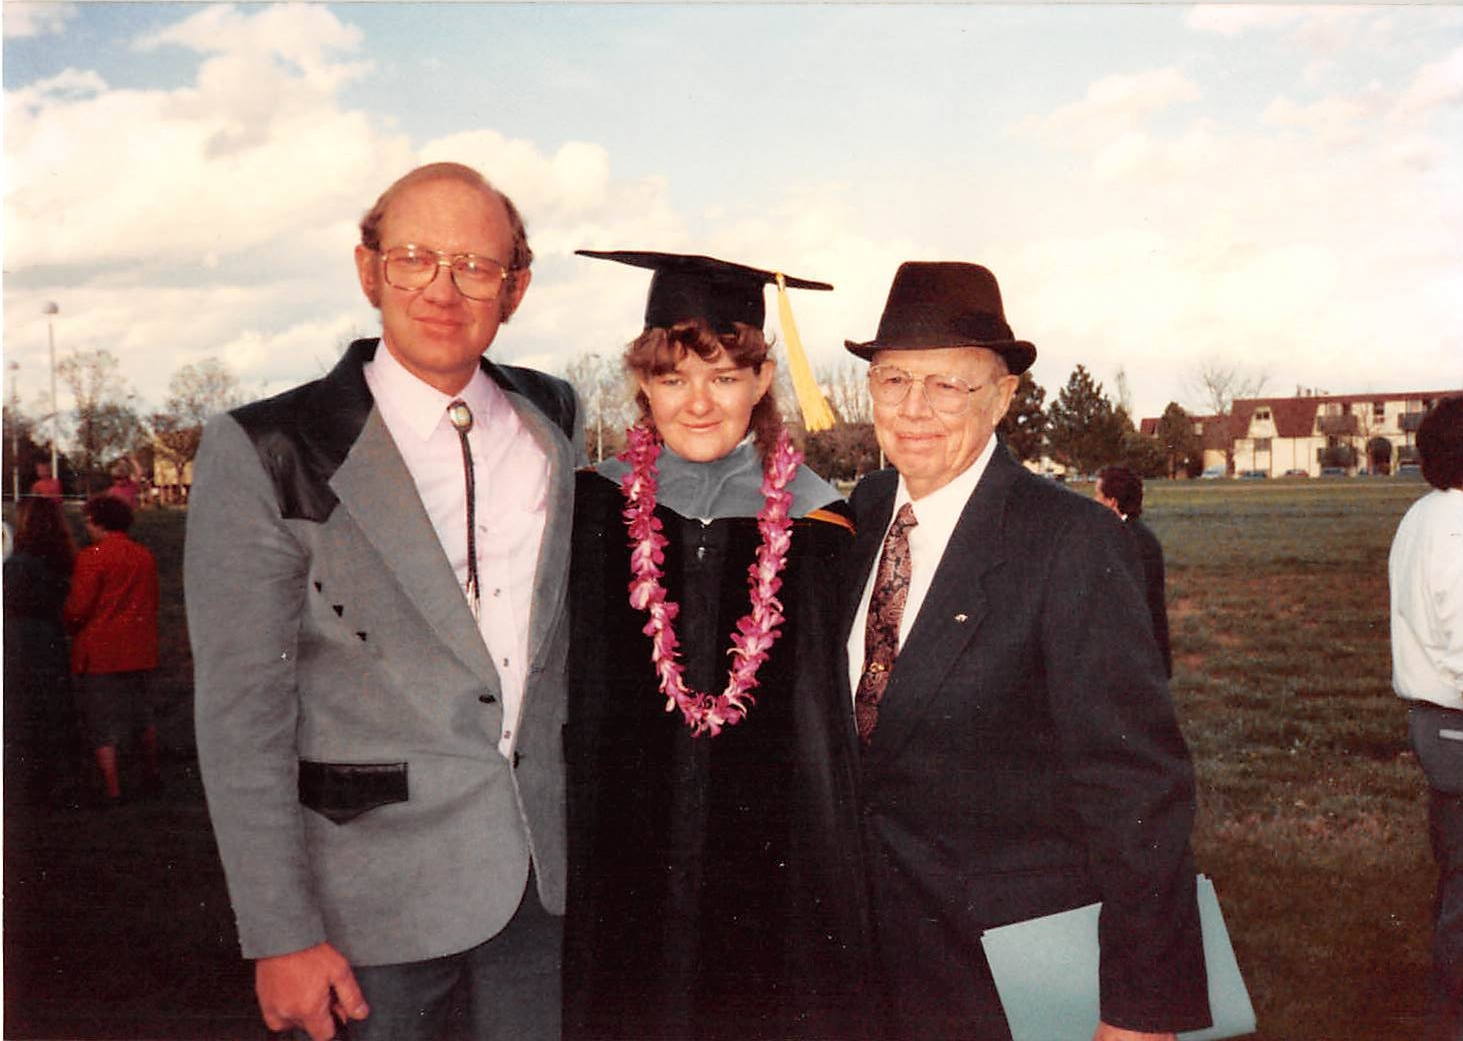 Dr. Kathy's vet school graduation! Left to right:Dr. Ed Smith, Dr. Kathy, and Dr. Tom Smith.